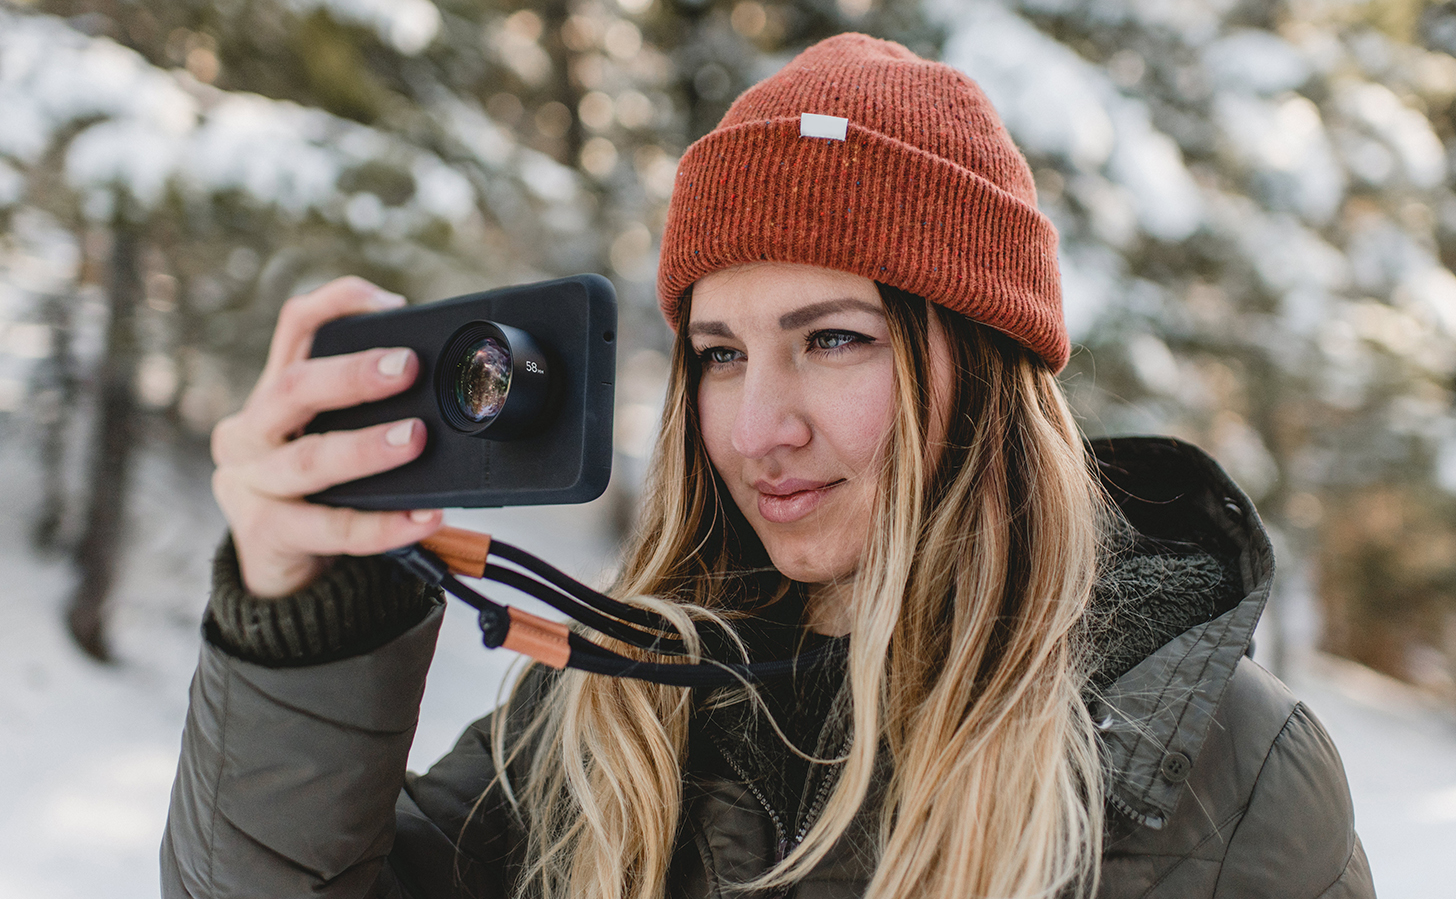 Moment Photo Cases are now available for OnePlus 6, OnePlus 6T cases slated for February 2019